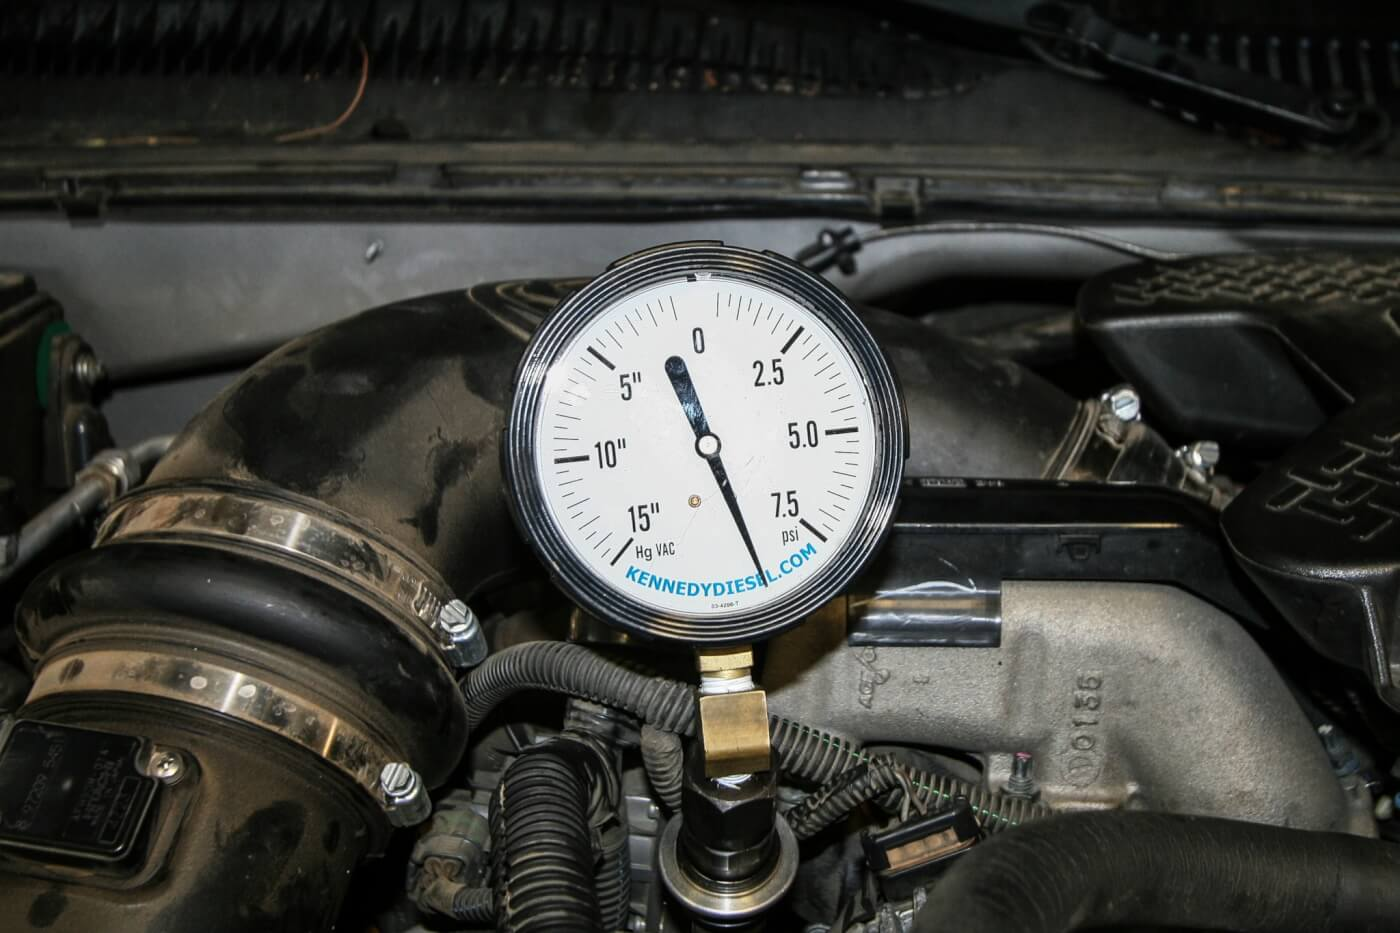 With the lift pump and fueling upgrades in place, our fuel pressure at